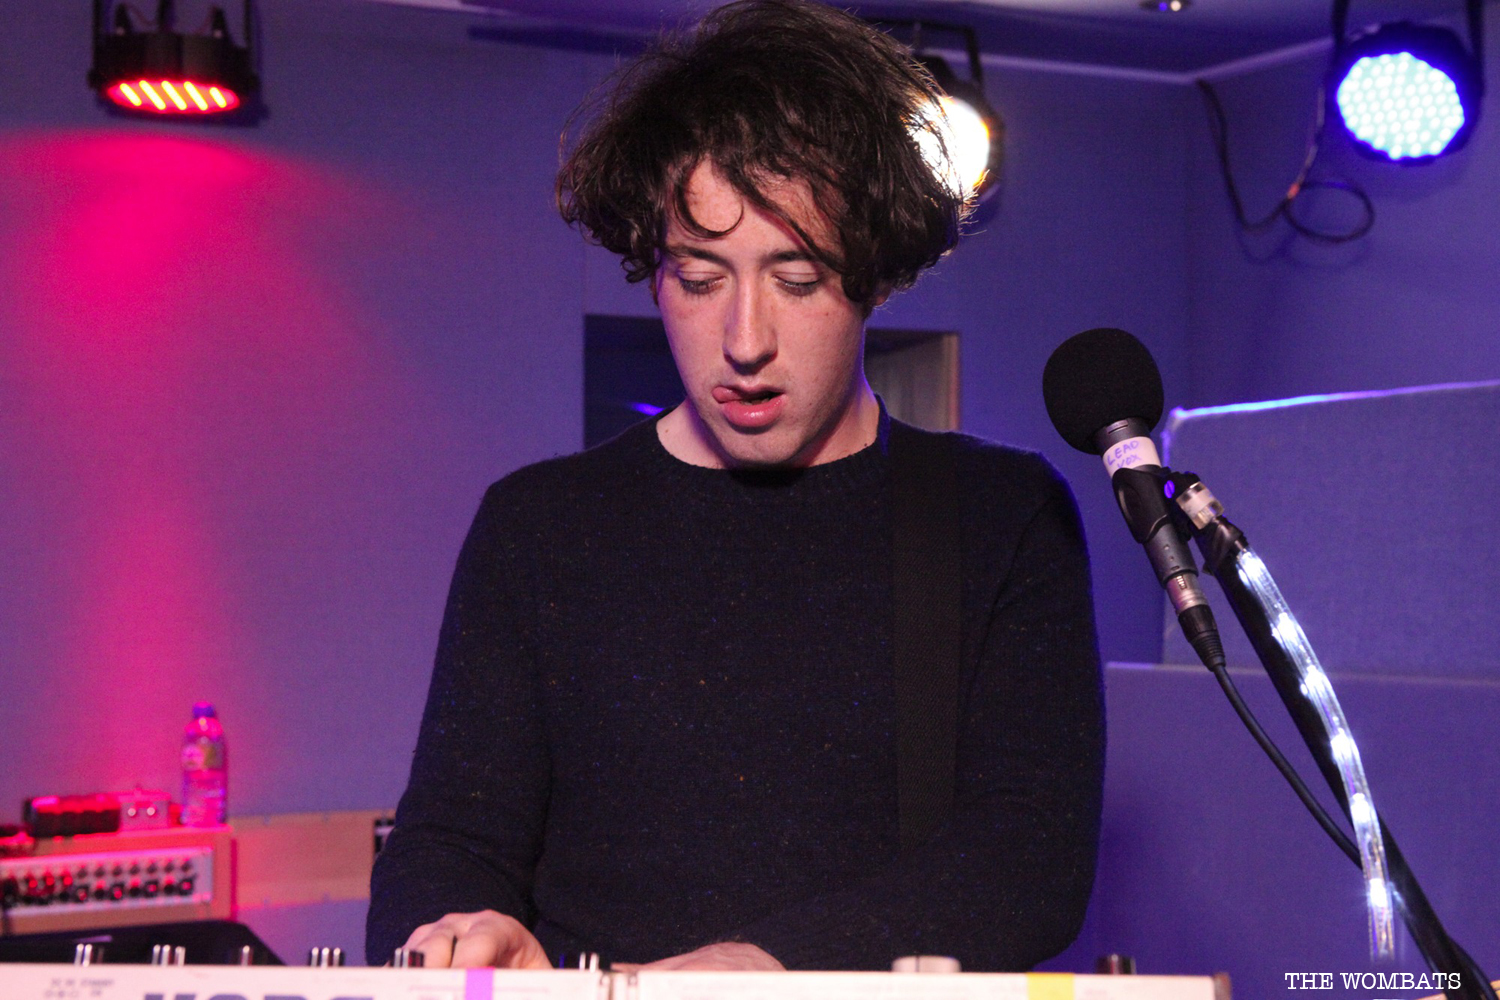 009_016_The_Wombats_by_Harriet_Armstrong